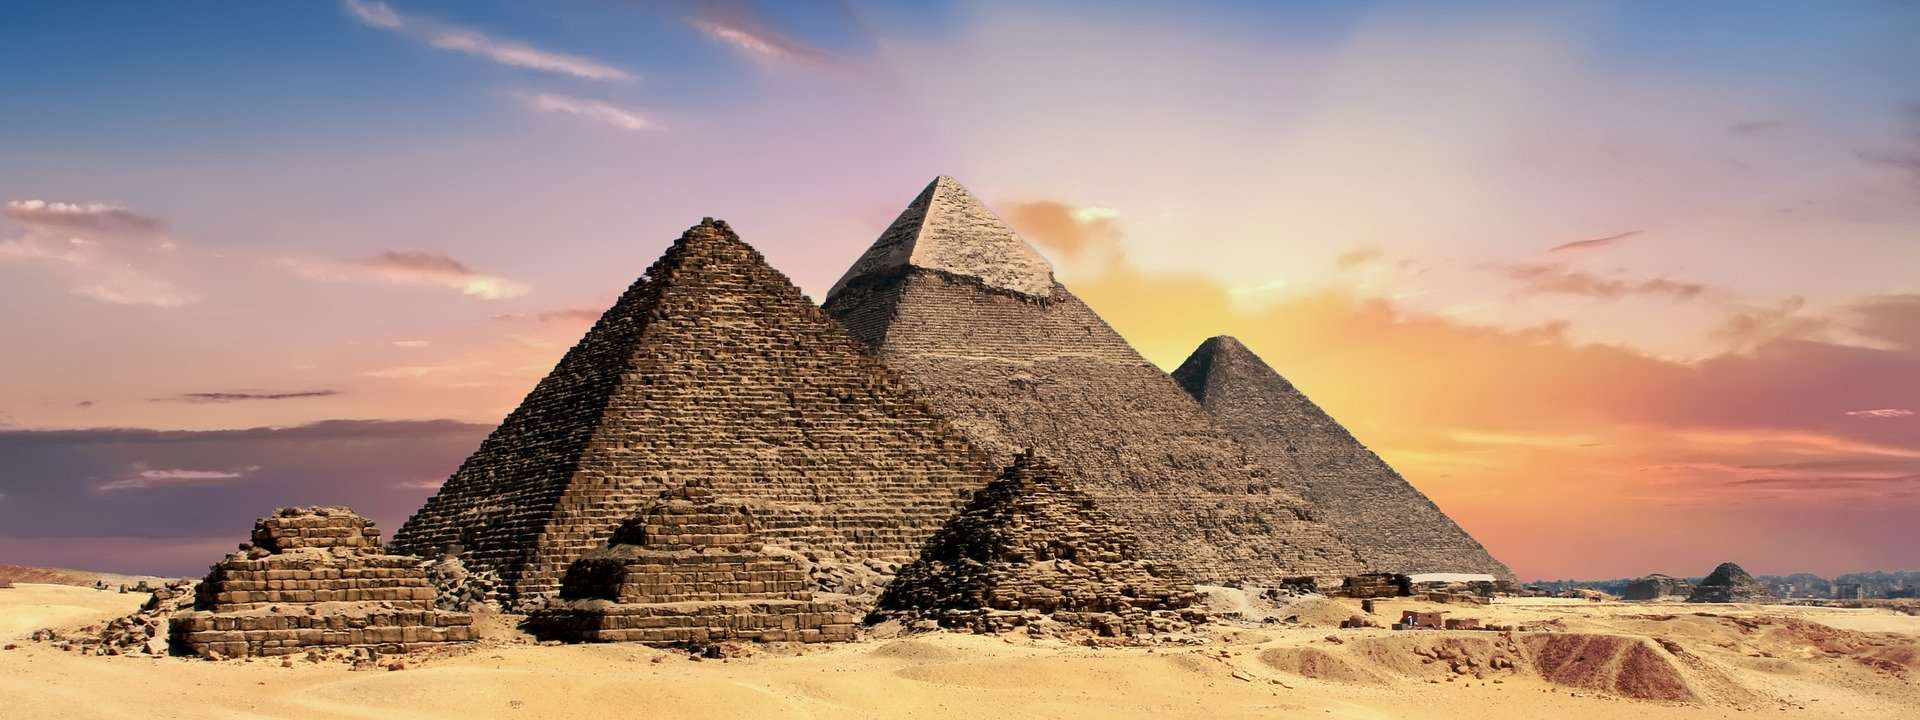 Facts about Egypt, pyramids